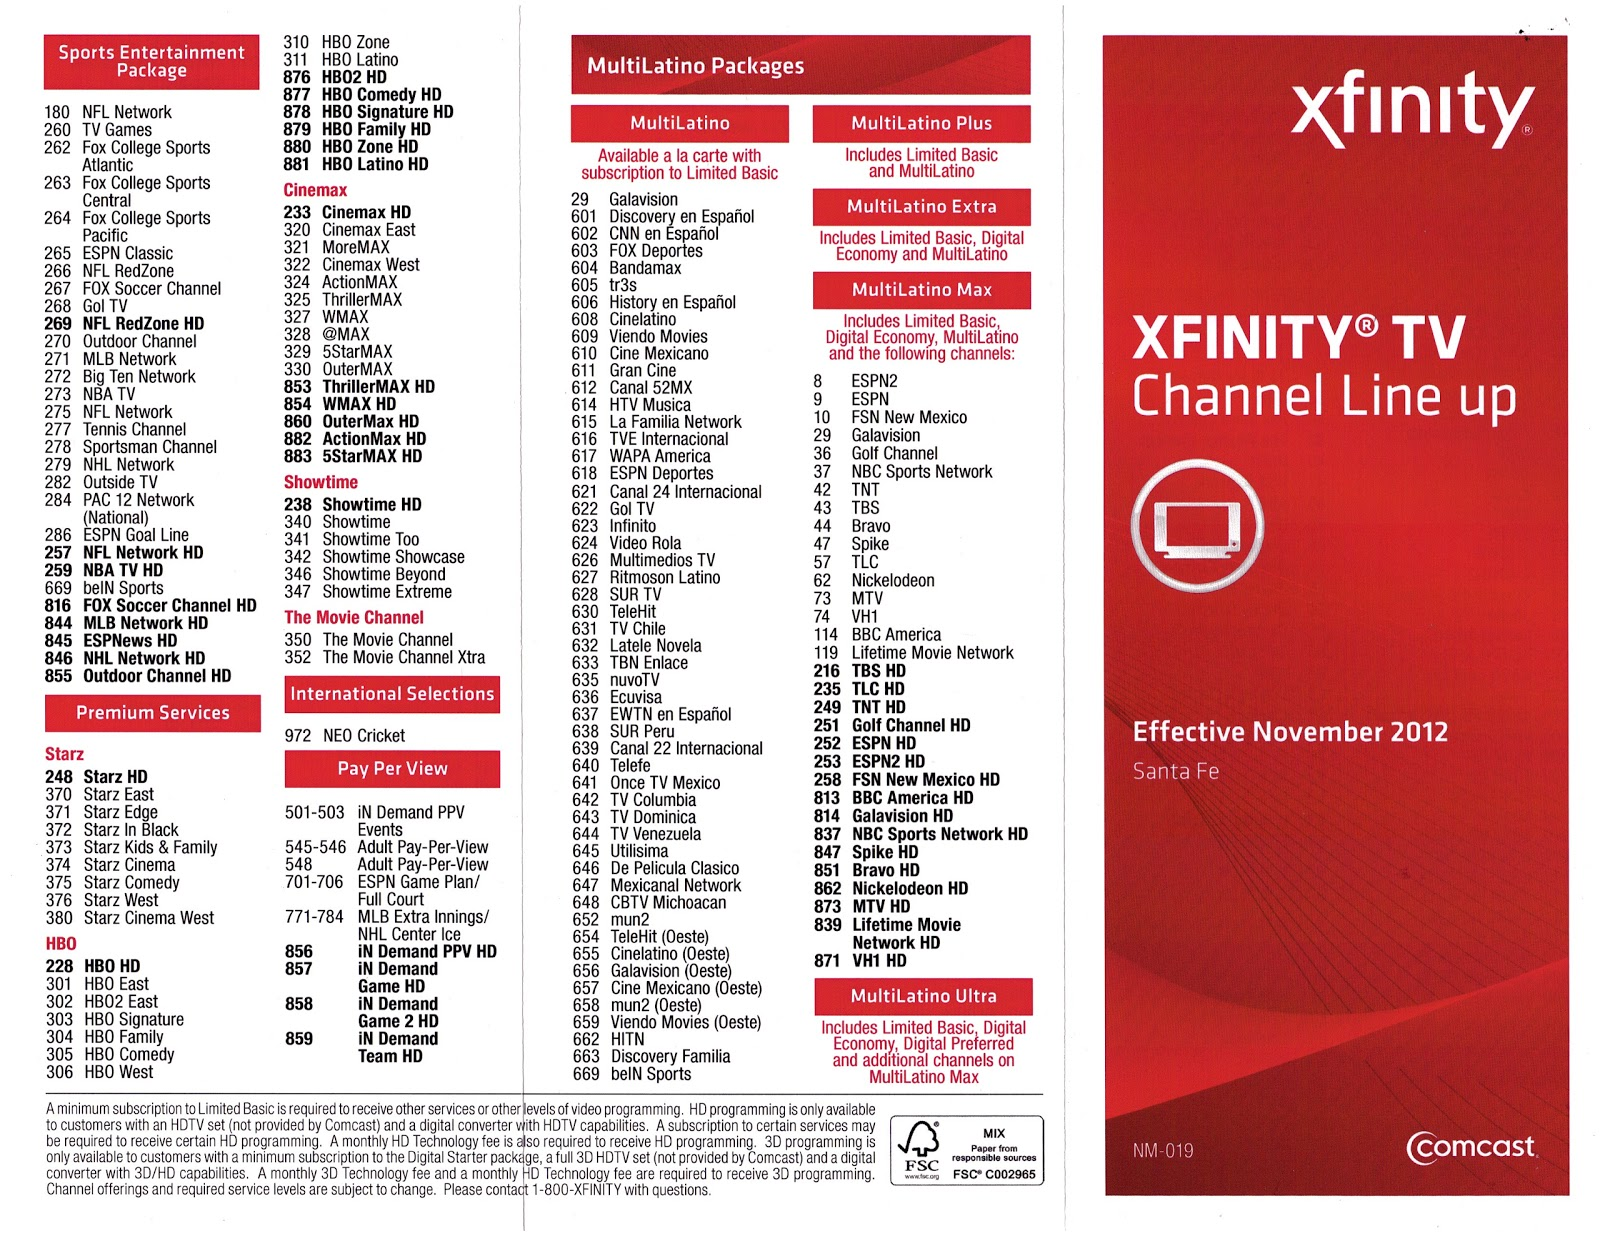 Sizzling image intended for printable xfinity channel guide